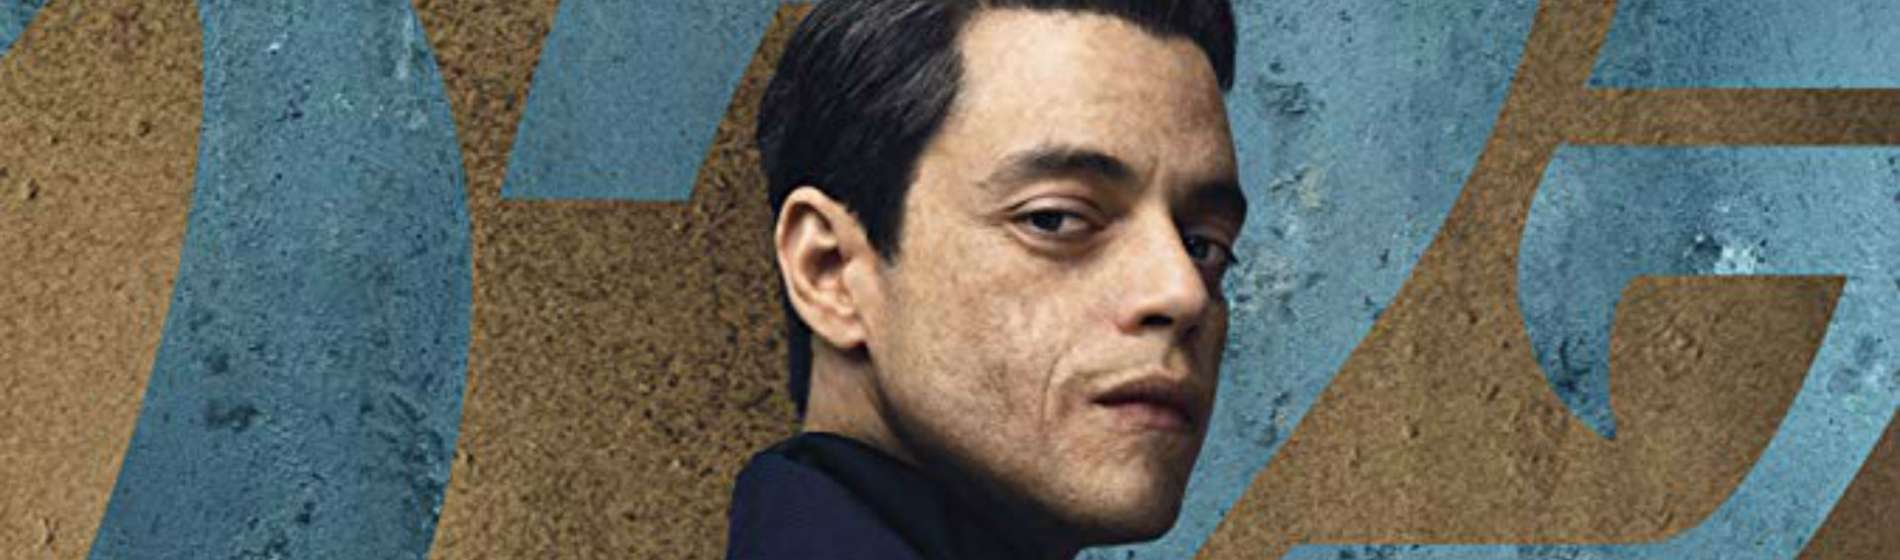 no-time-to-die-rami-malek-poster